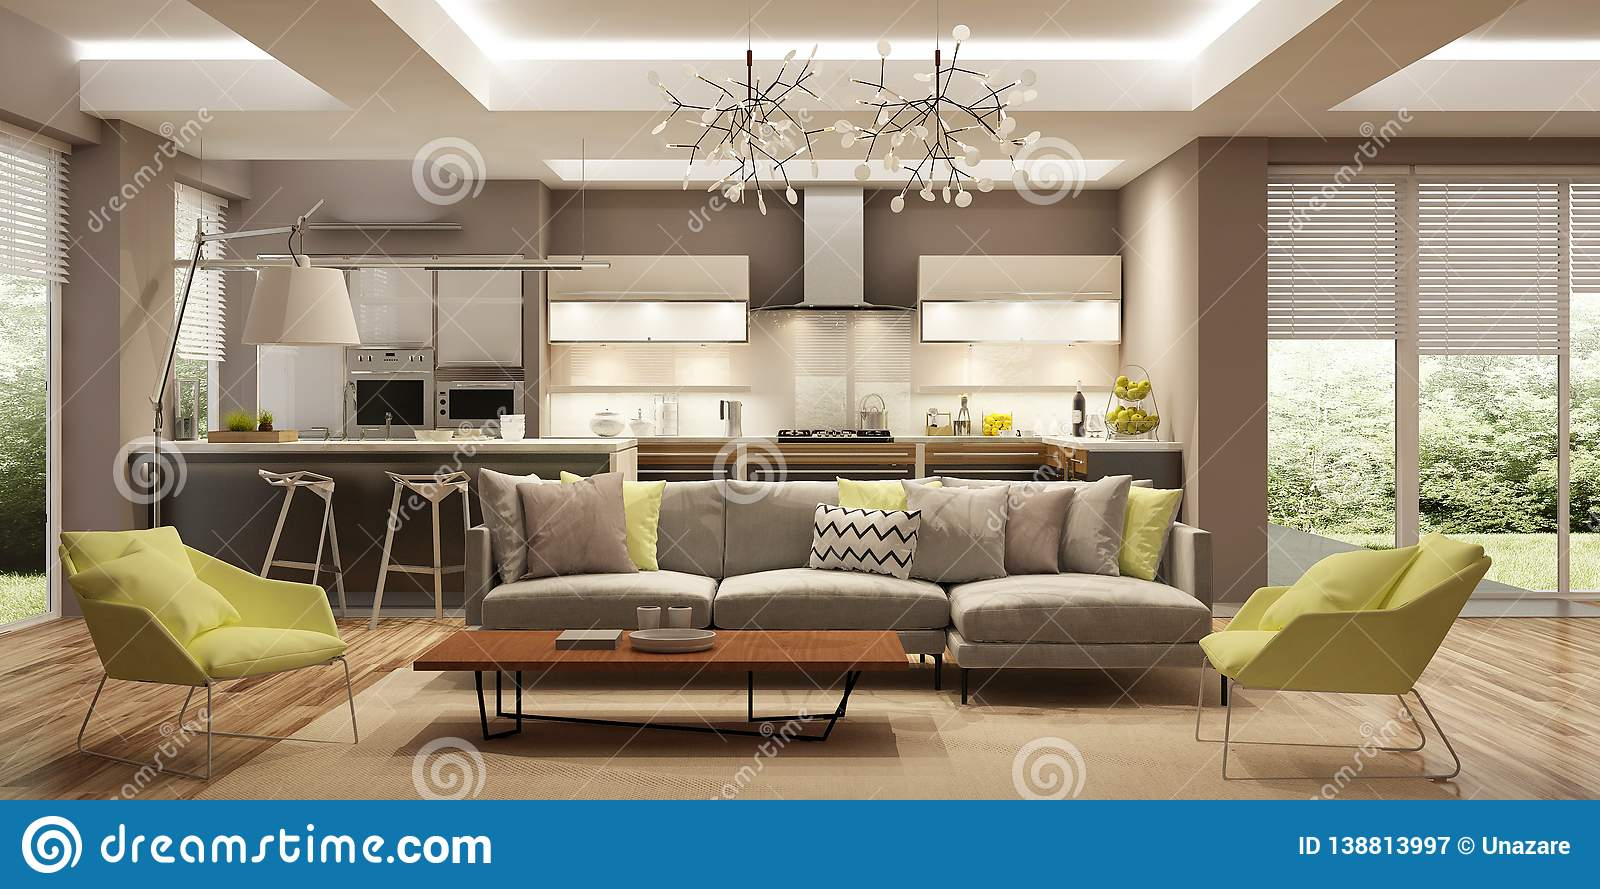 Modern House Interior In Scandinavian Style 3d Rendering Stock Illustration Illustration Of Armchairs Armchair 138813997,Cover Creative Graphic Design Background